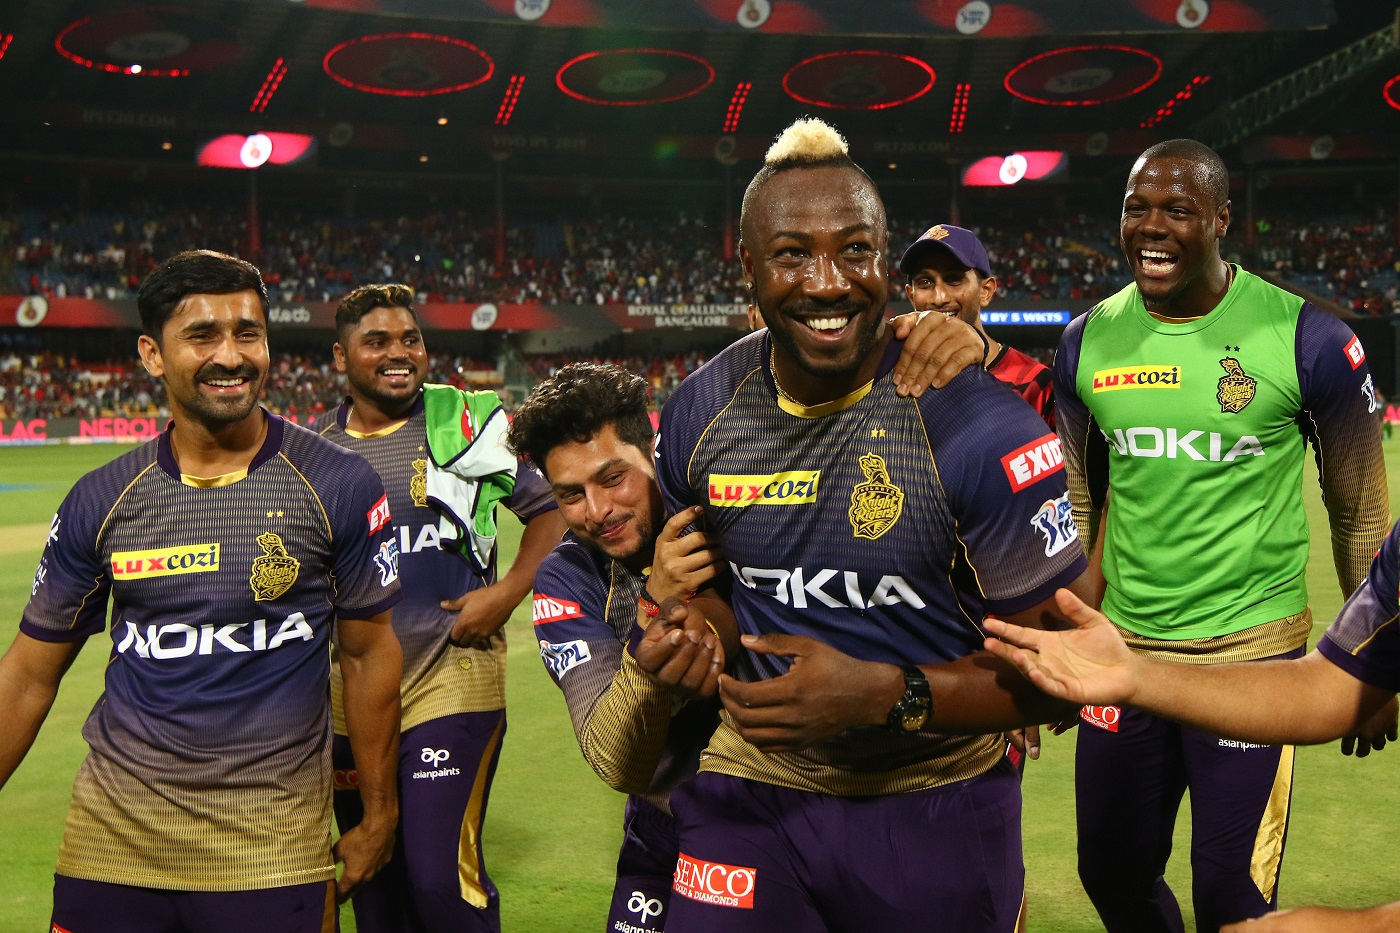 Andre Russell and Kolkata Knight Riders at Eden Gardens, a mighty challenge for Delhi Capitals